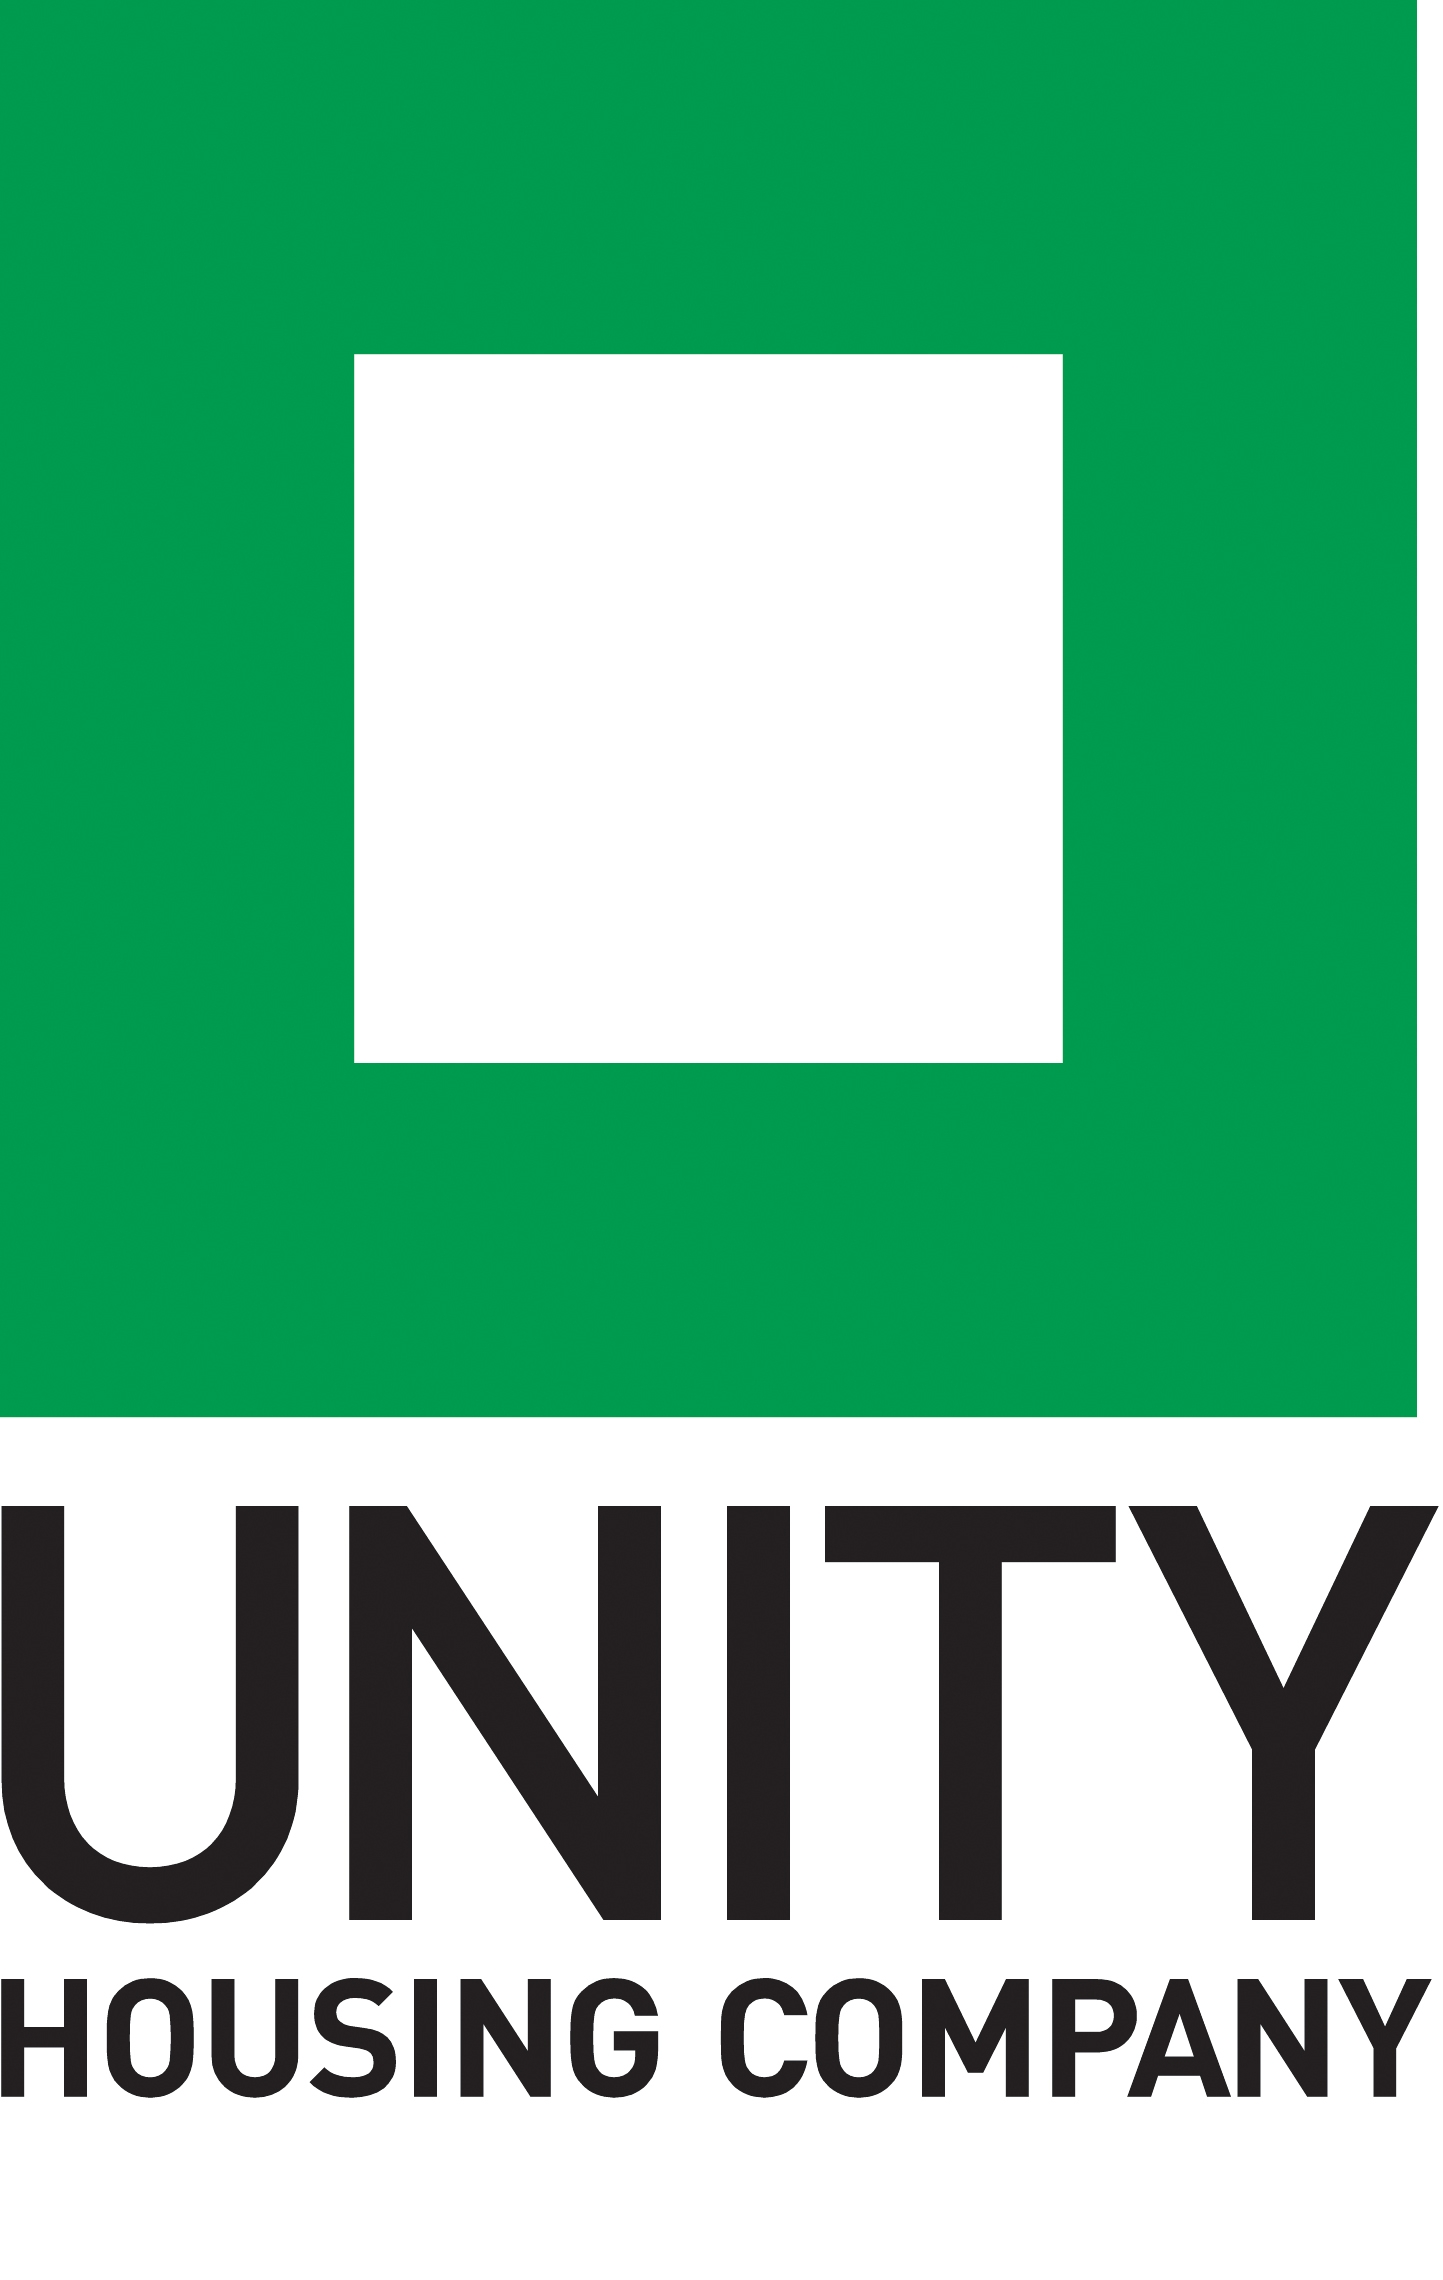 UNITY logo rgb from style guide as jpeg file